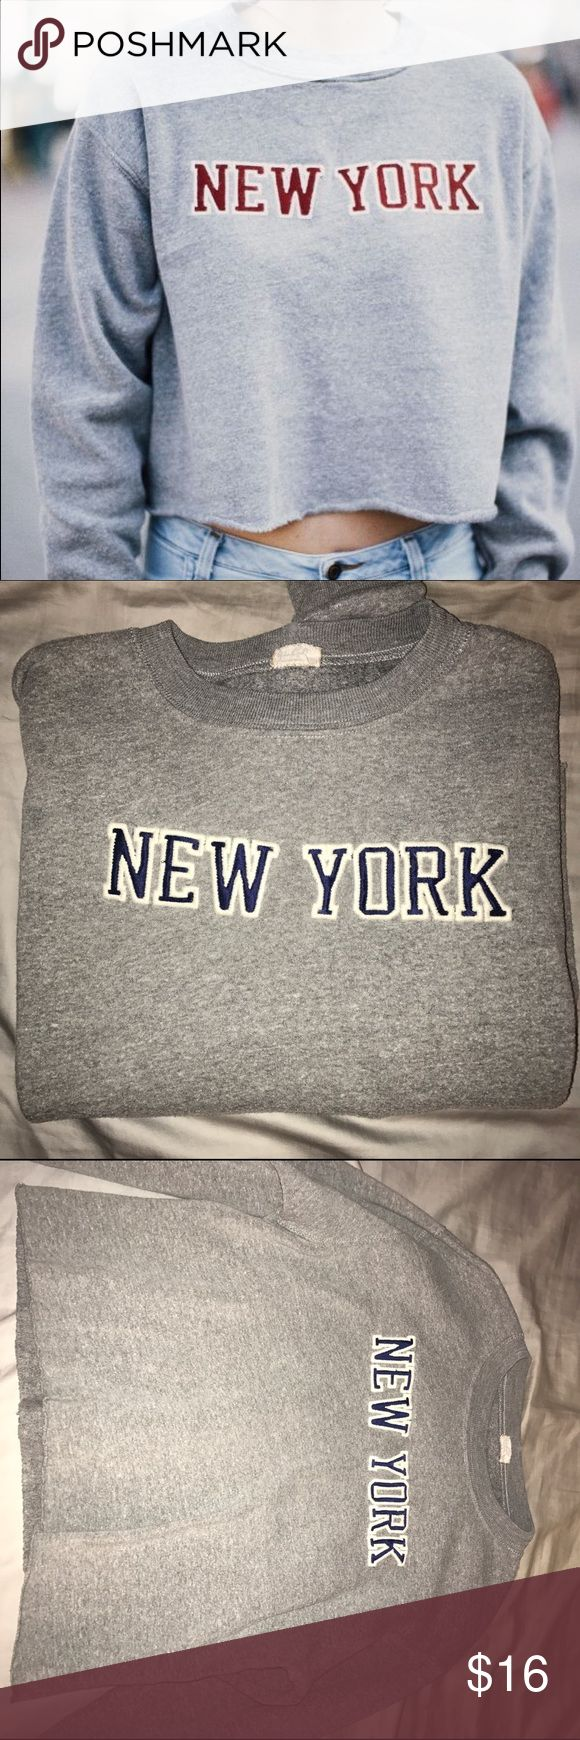 BRANDY MELVILLE NANCY SWEATSHIRT **BLUE LETTERS Super cozy cutoff sweatshirt (purchased from bm with rough edge hem) blue letters not red just using one with red as my cover photo as I couldn't find the blue online but still wanted to show how it fits :) NO TRADES Brandy Melville Tops Sweatshirts & Hoodies